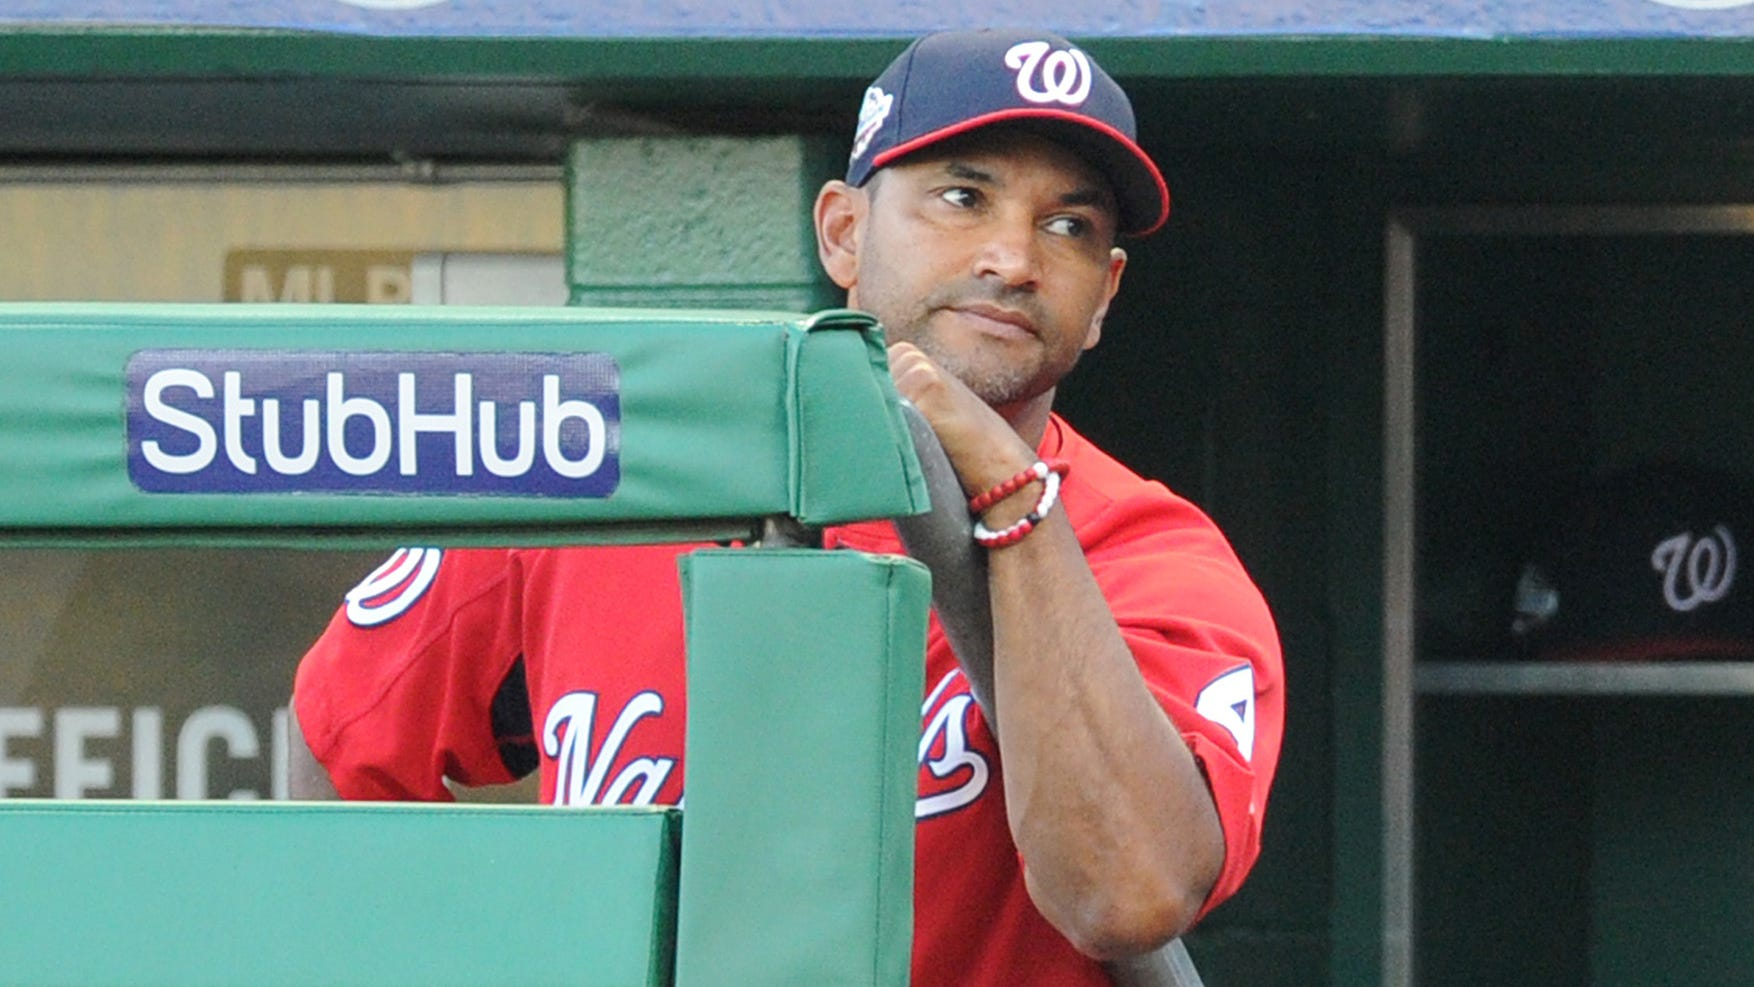 Washington Nationals manager Dave Martinez (4) looks on from the dugout in a July game.